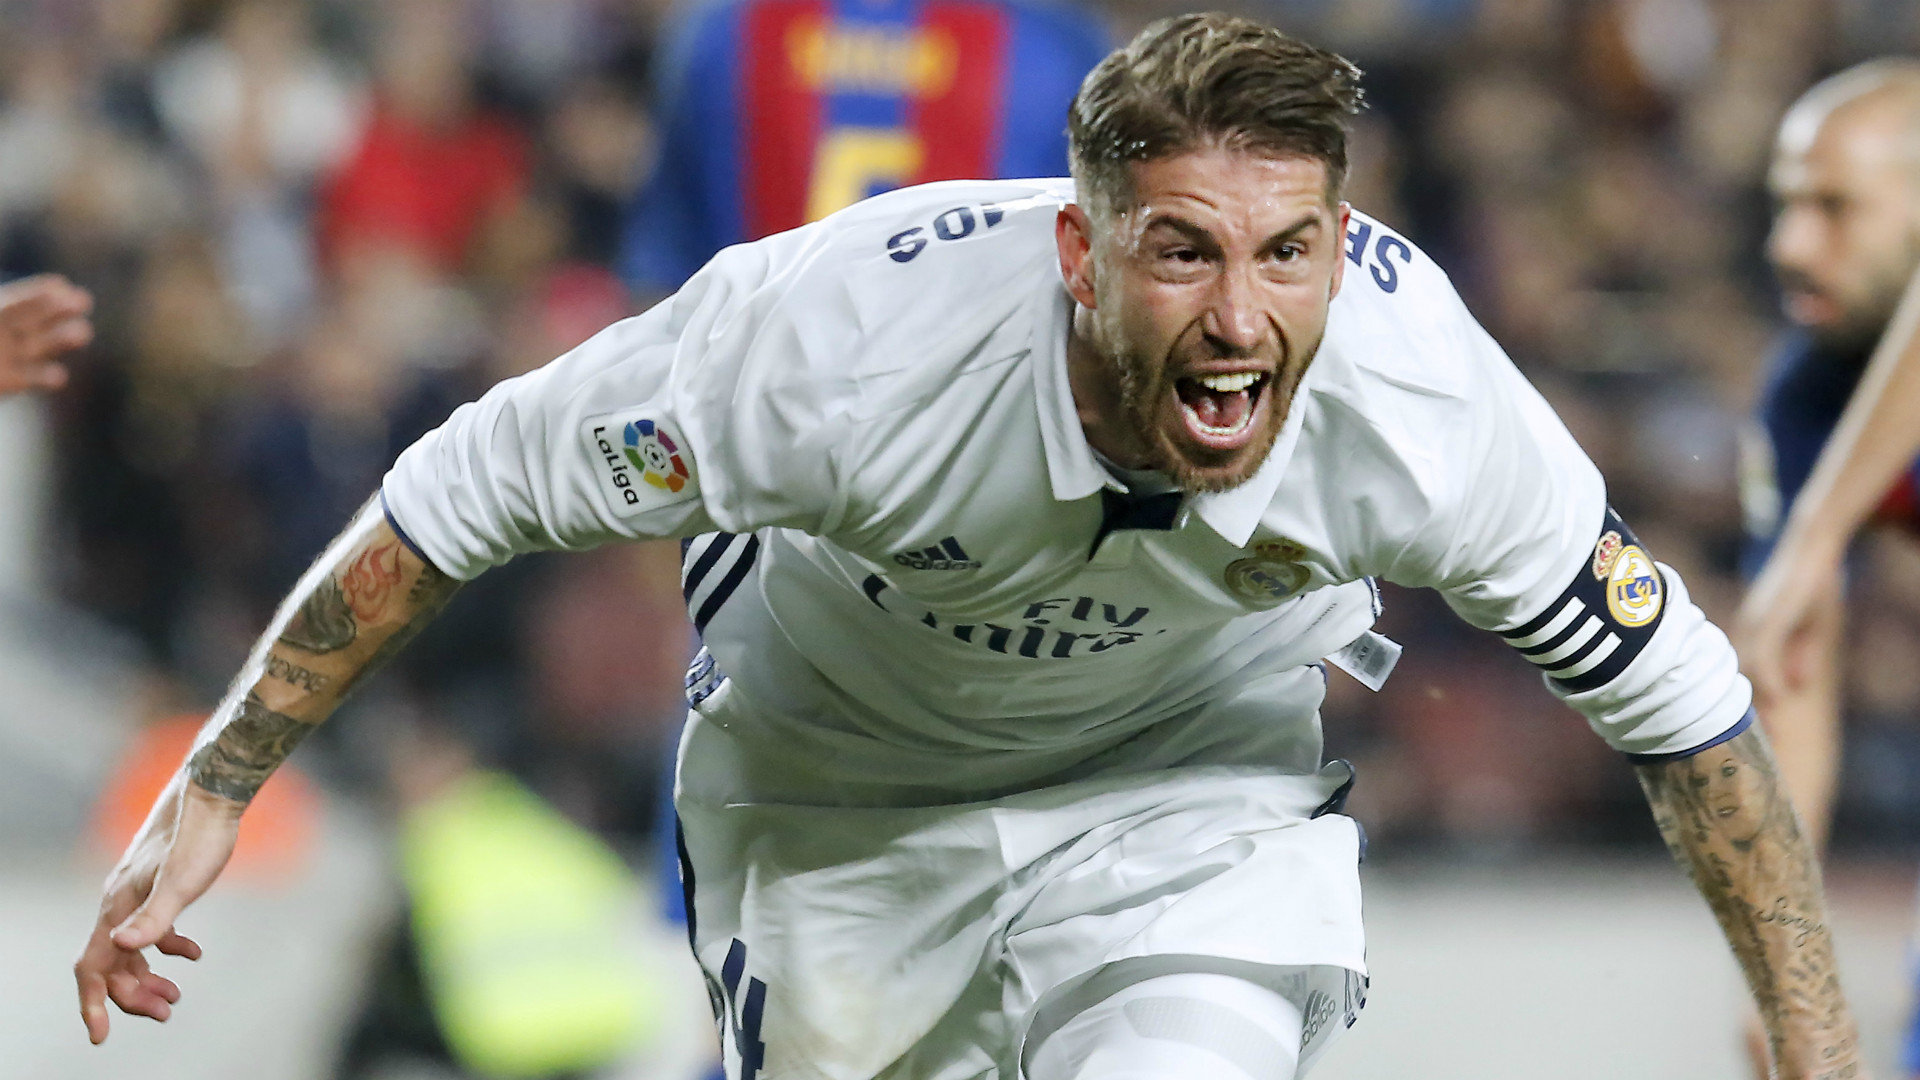 1920x1080 'Ramos is the best player in the world' - Rami